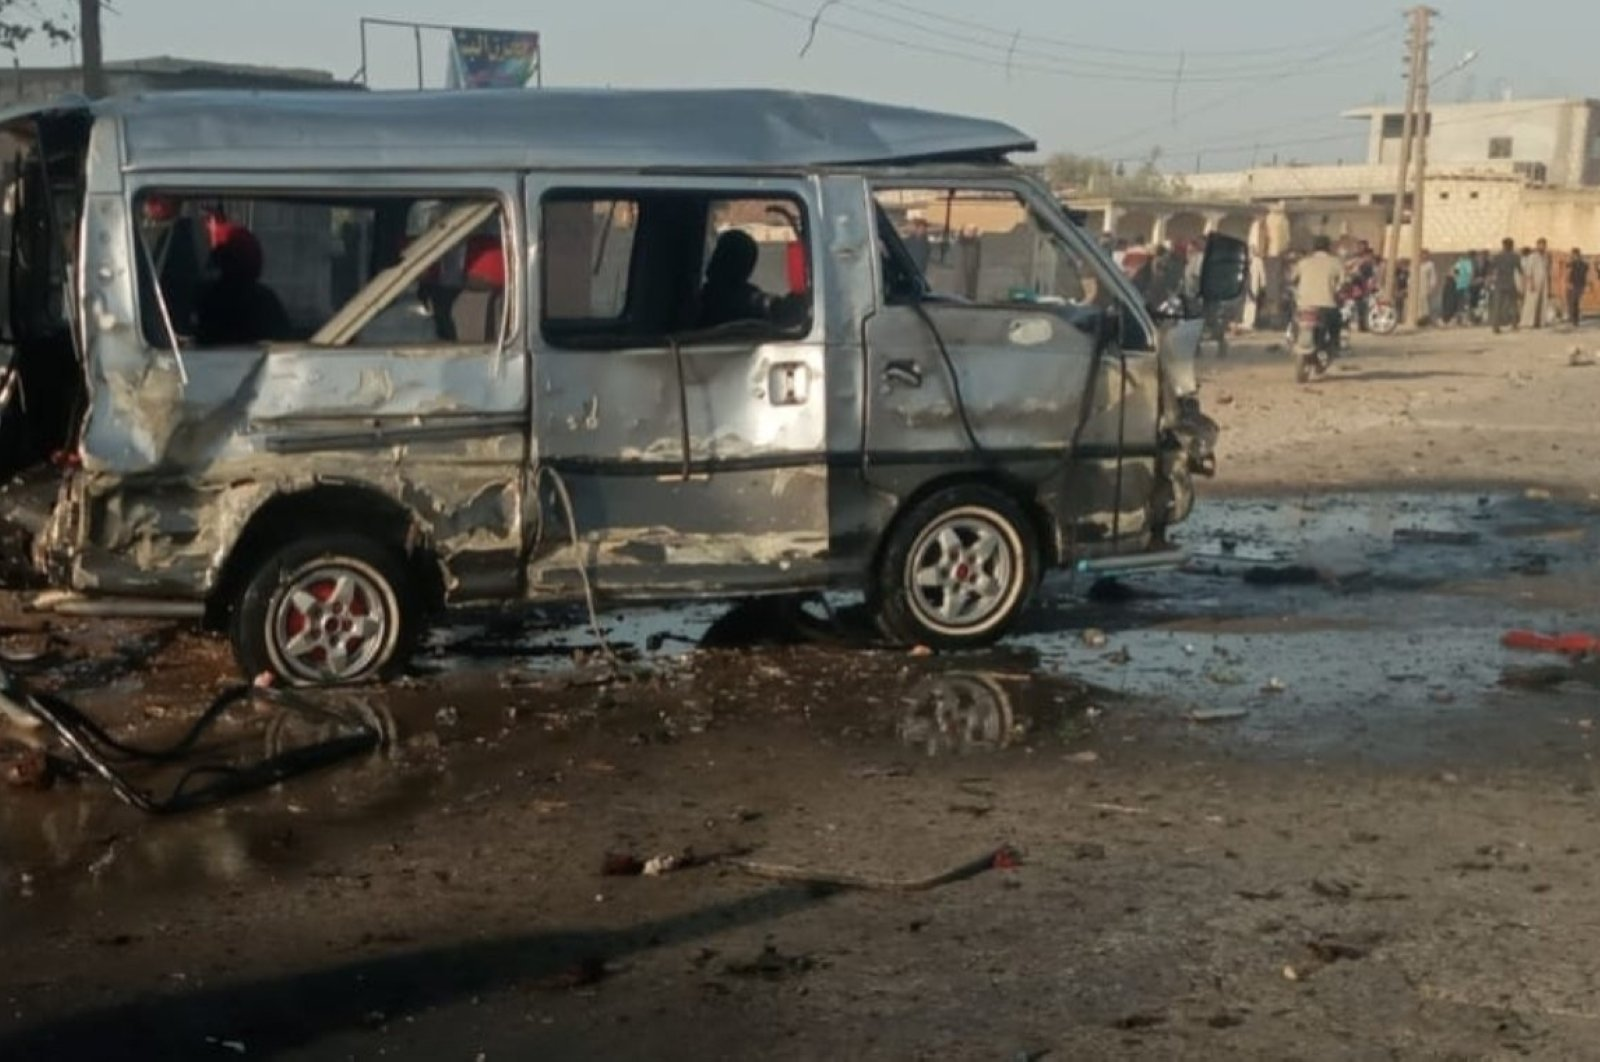 The remains of a bomb-laden vehicle that exploded in northern Syria's Ras al-Ain, killing two and injuring 11, are seen on Sept. 24, 2020. (IHA Photo)